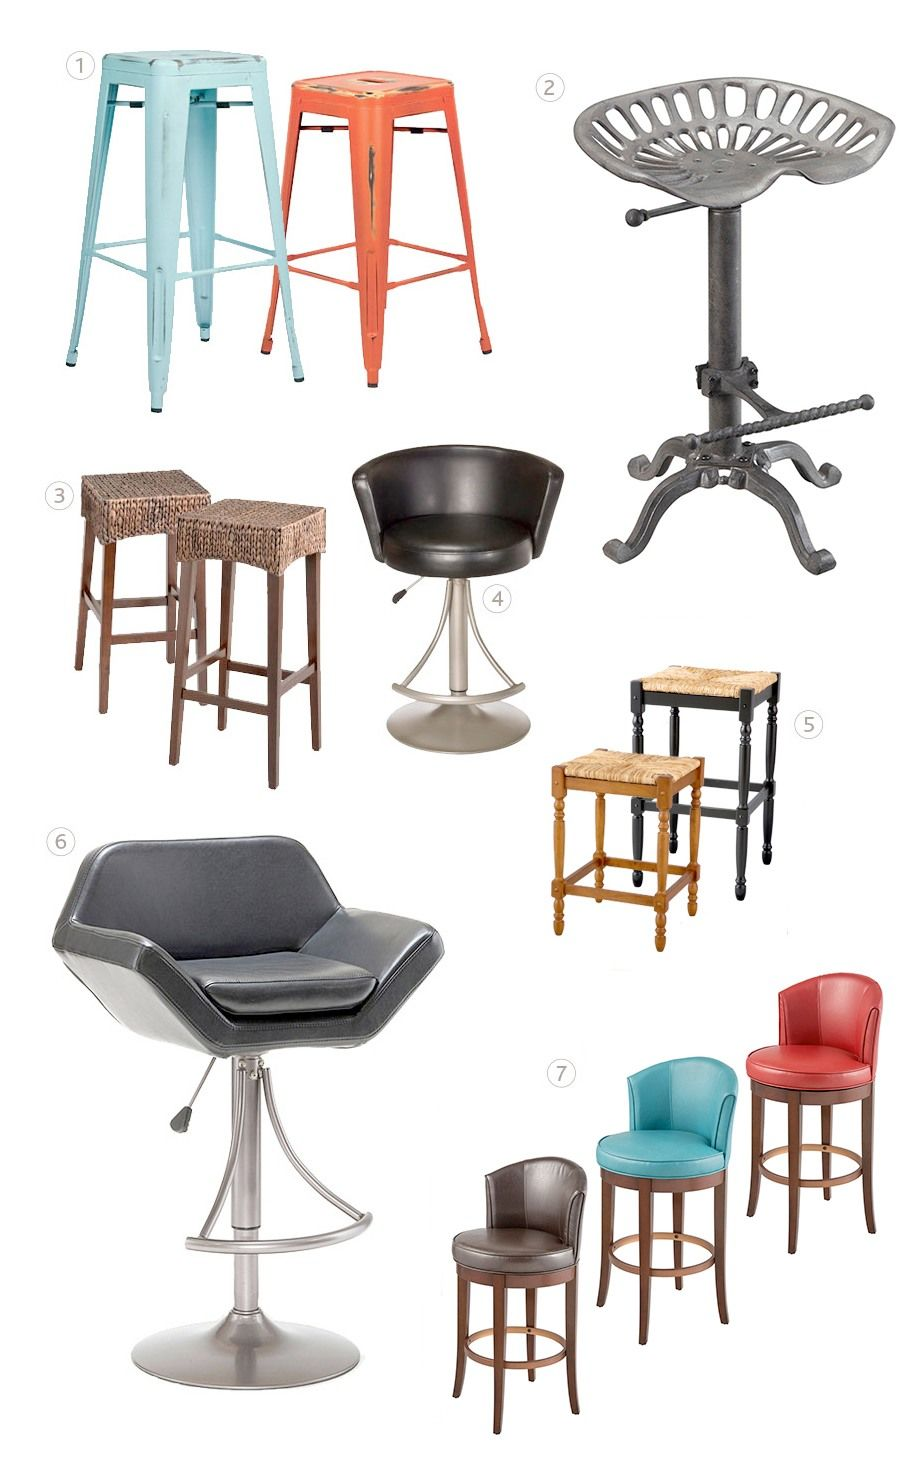 how to choose the right bar stool height 3443 barstool california rh pinterest com